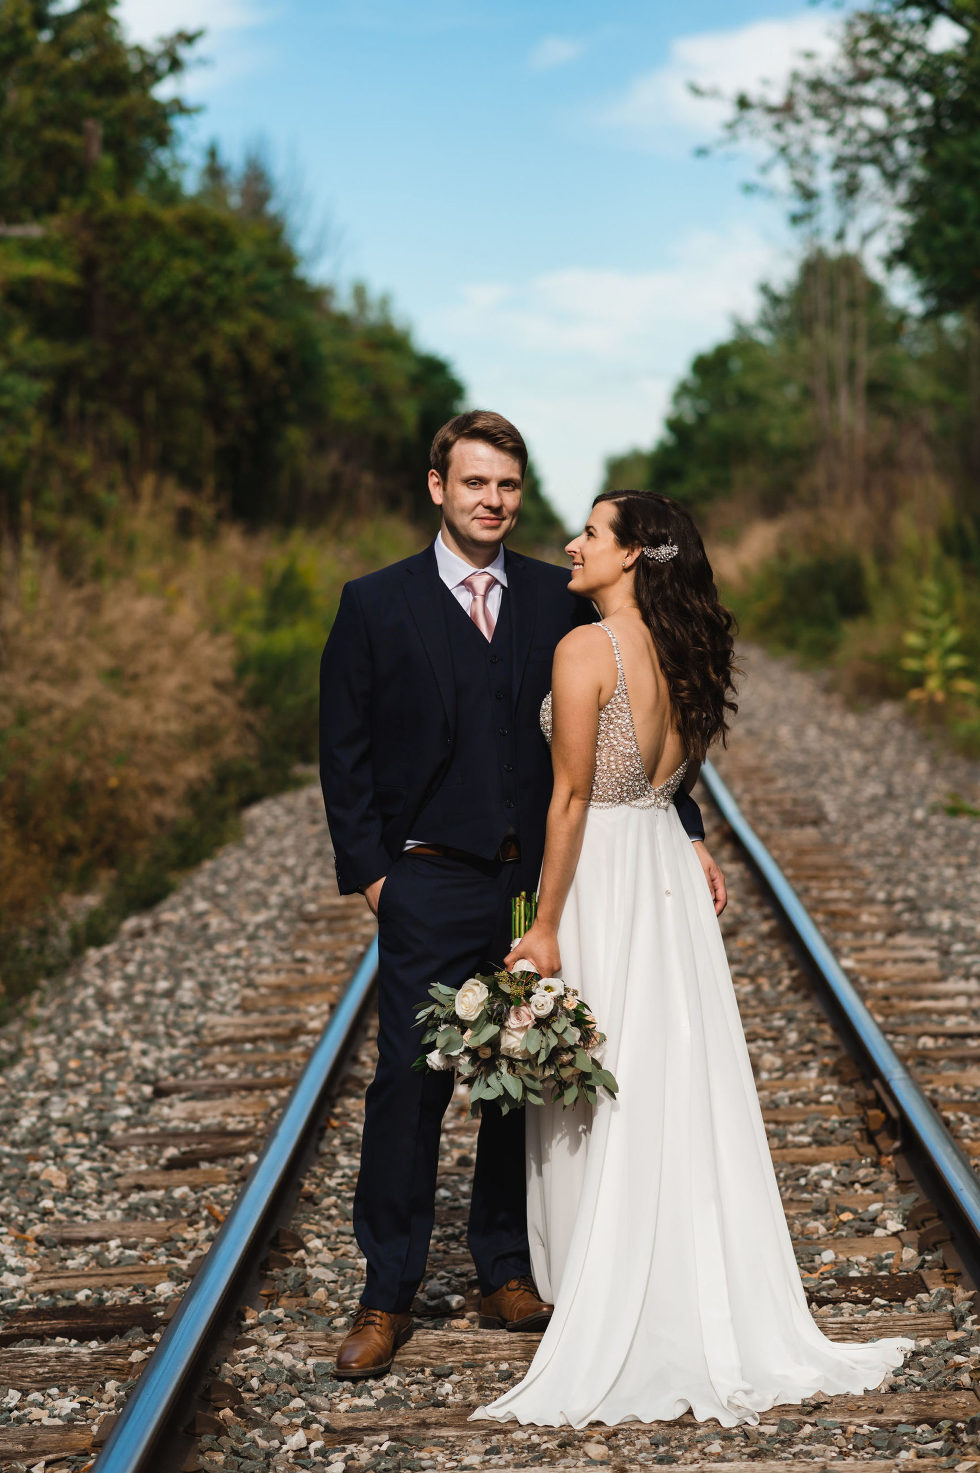 groom smiling as his bride looks at him adoringly while they stand over train tracks during wedding at Carvers cottage in Toronto